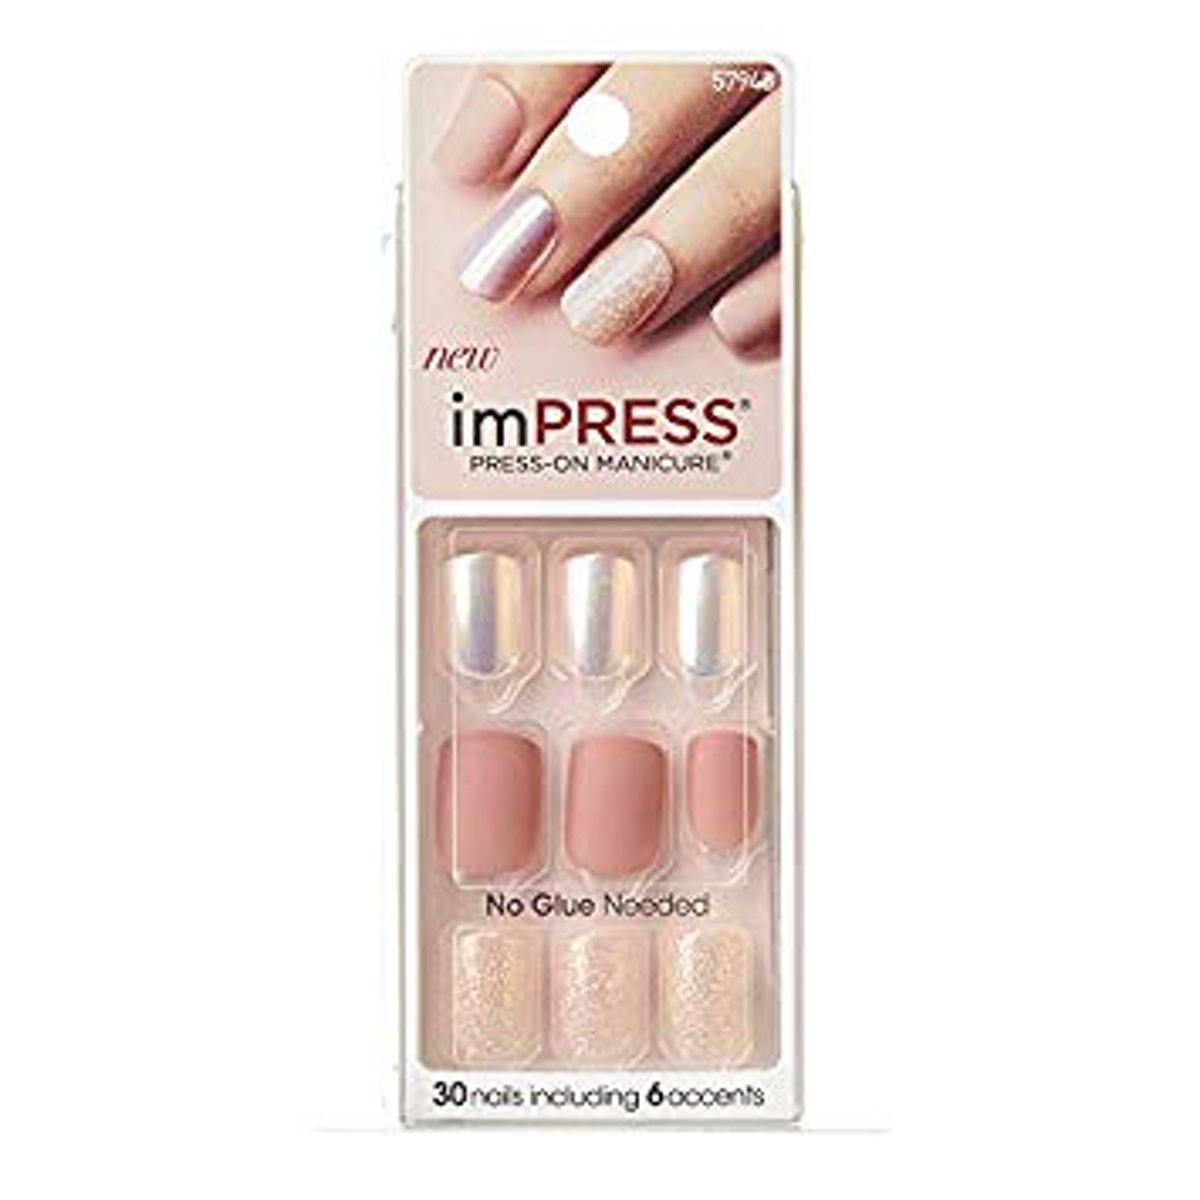 """KISS imPRESS Press-On Manicure in Night Fever"""""""